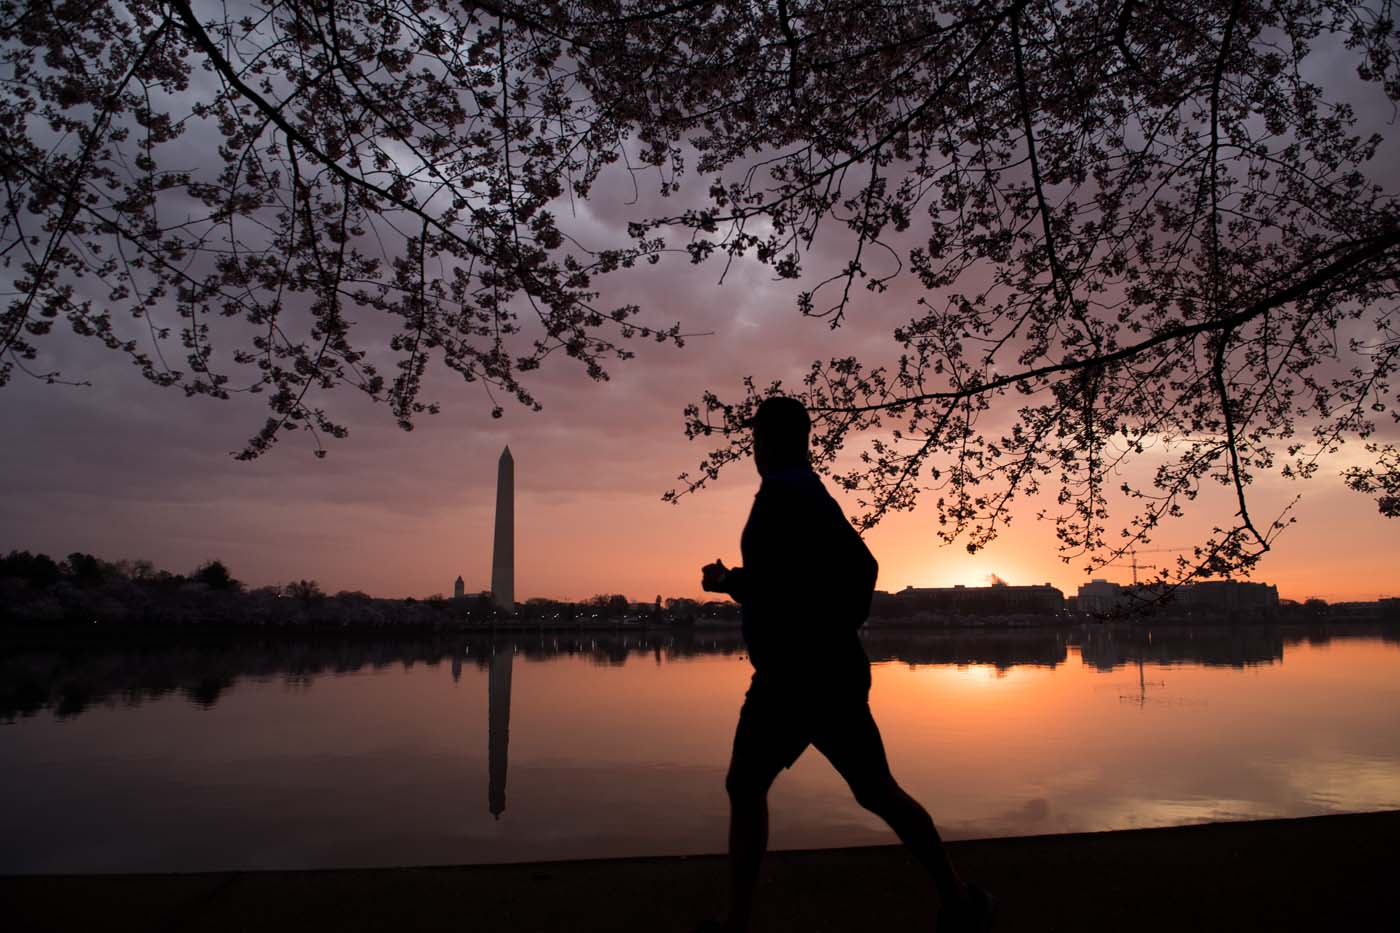 A man jogs past the Cherry Blossom trees as they bloom around the Tidal Basin at sunrise in Washington, DC, April 4, 2018. / AFP PHOTO / SAUL LOEB